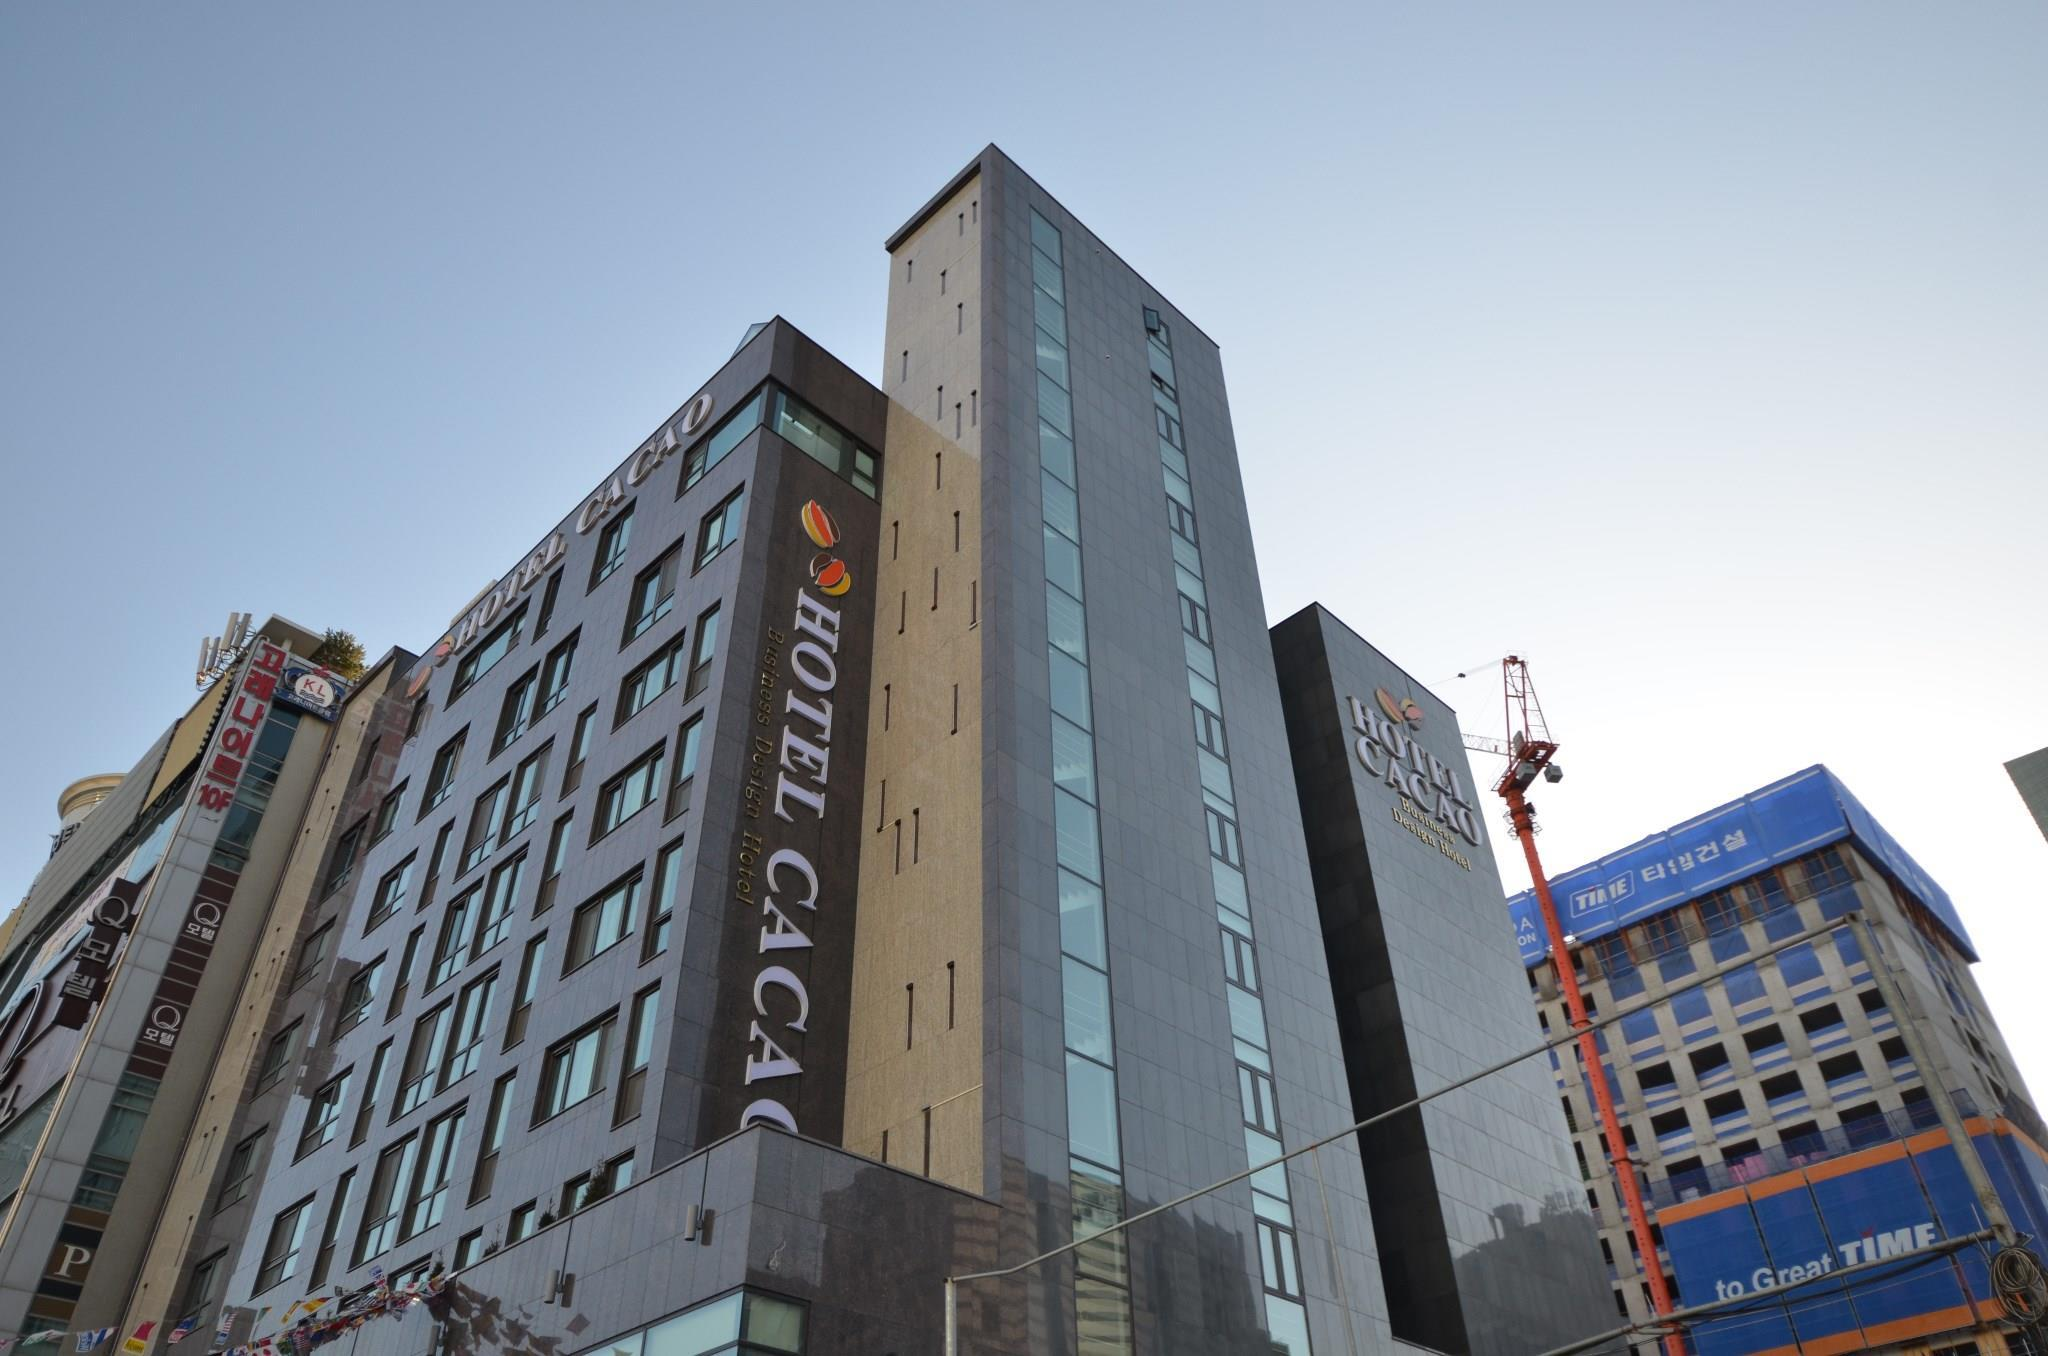 Hotel Cacao 50 7 3 Incheon Hotel Deals Reviews Kayak